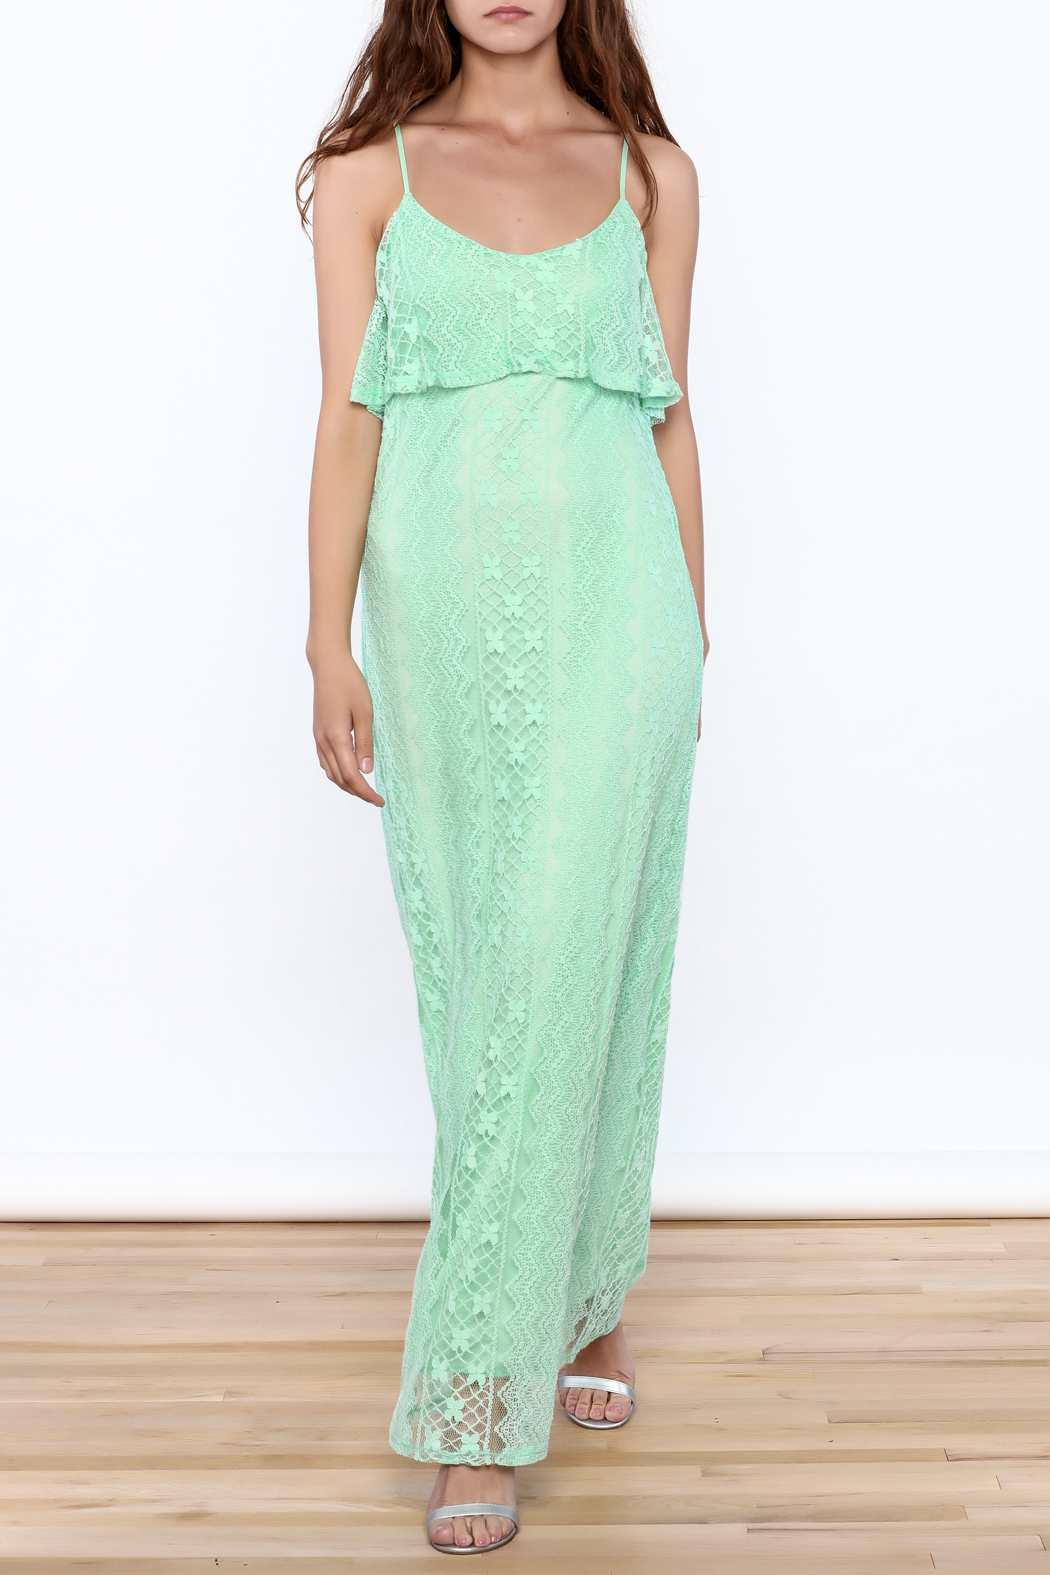 Honey Punch Lace Maxi Dress - Front Cropped Image